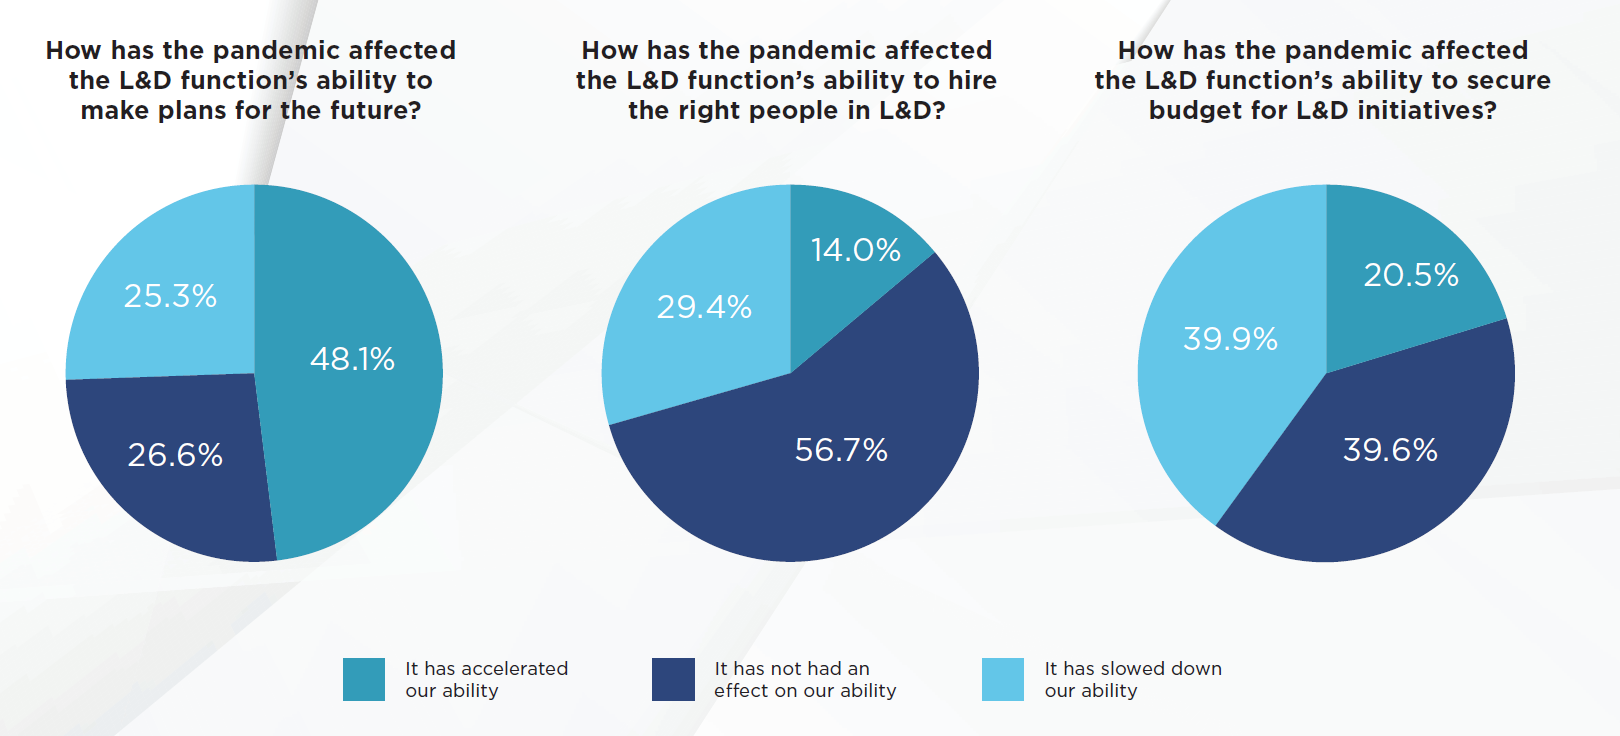 The pandemic has impacted L&D's ability to make plans, hire and secure budgets